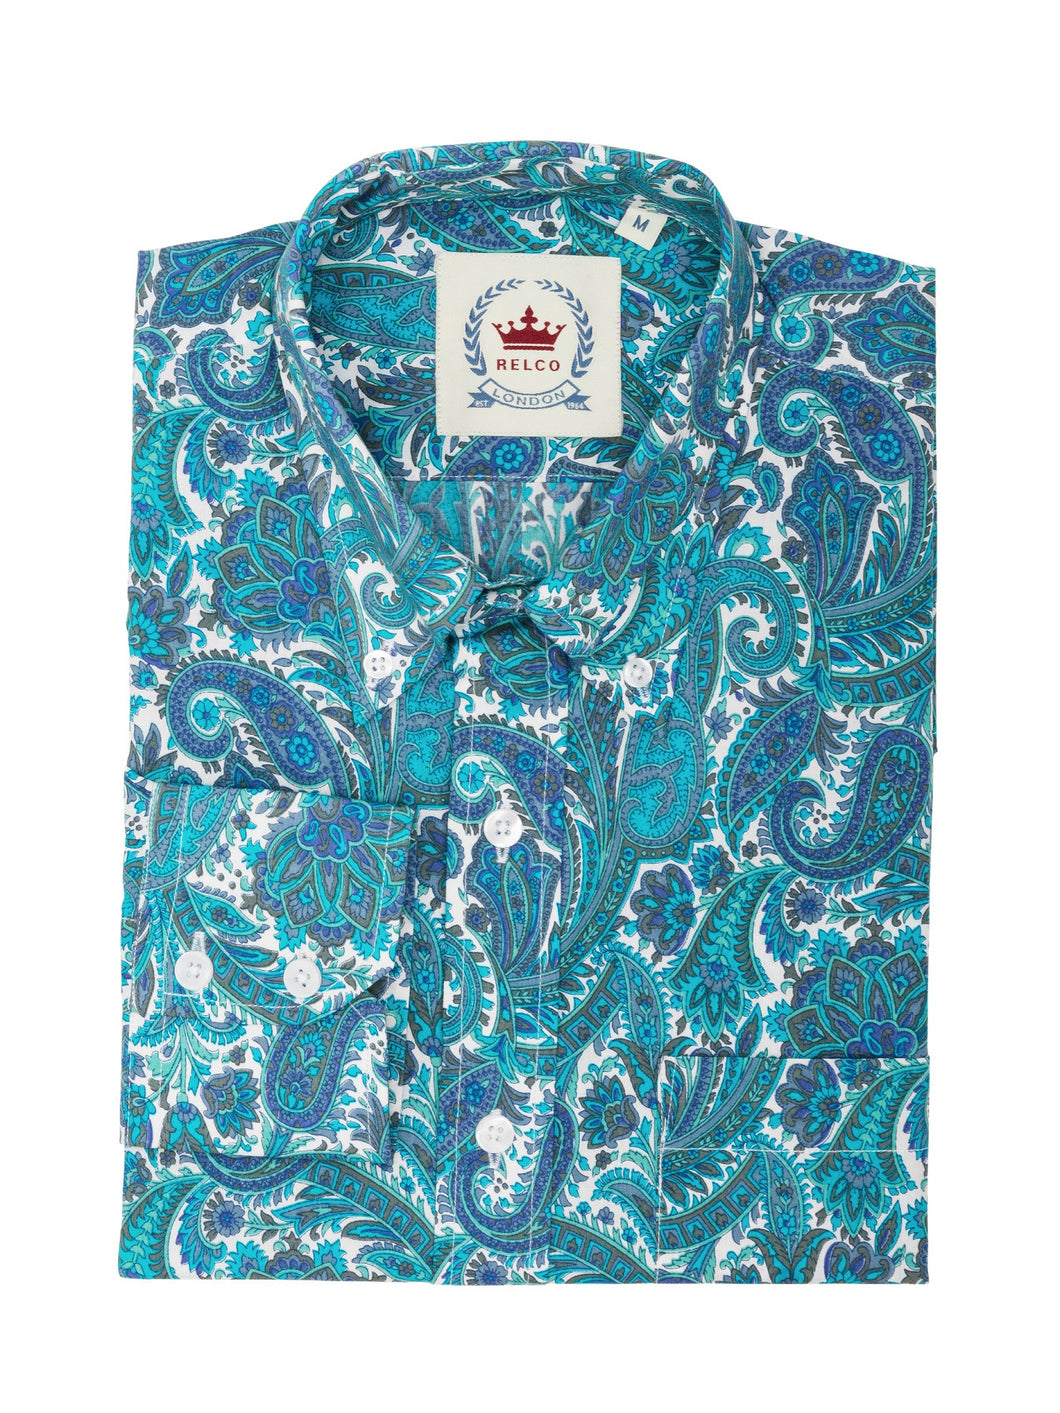 Relco Turquoise Long Sleeve Button Down Paisley Shirt PS19